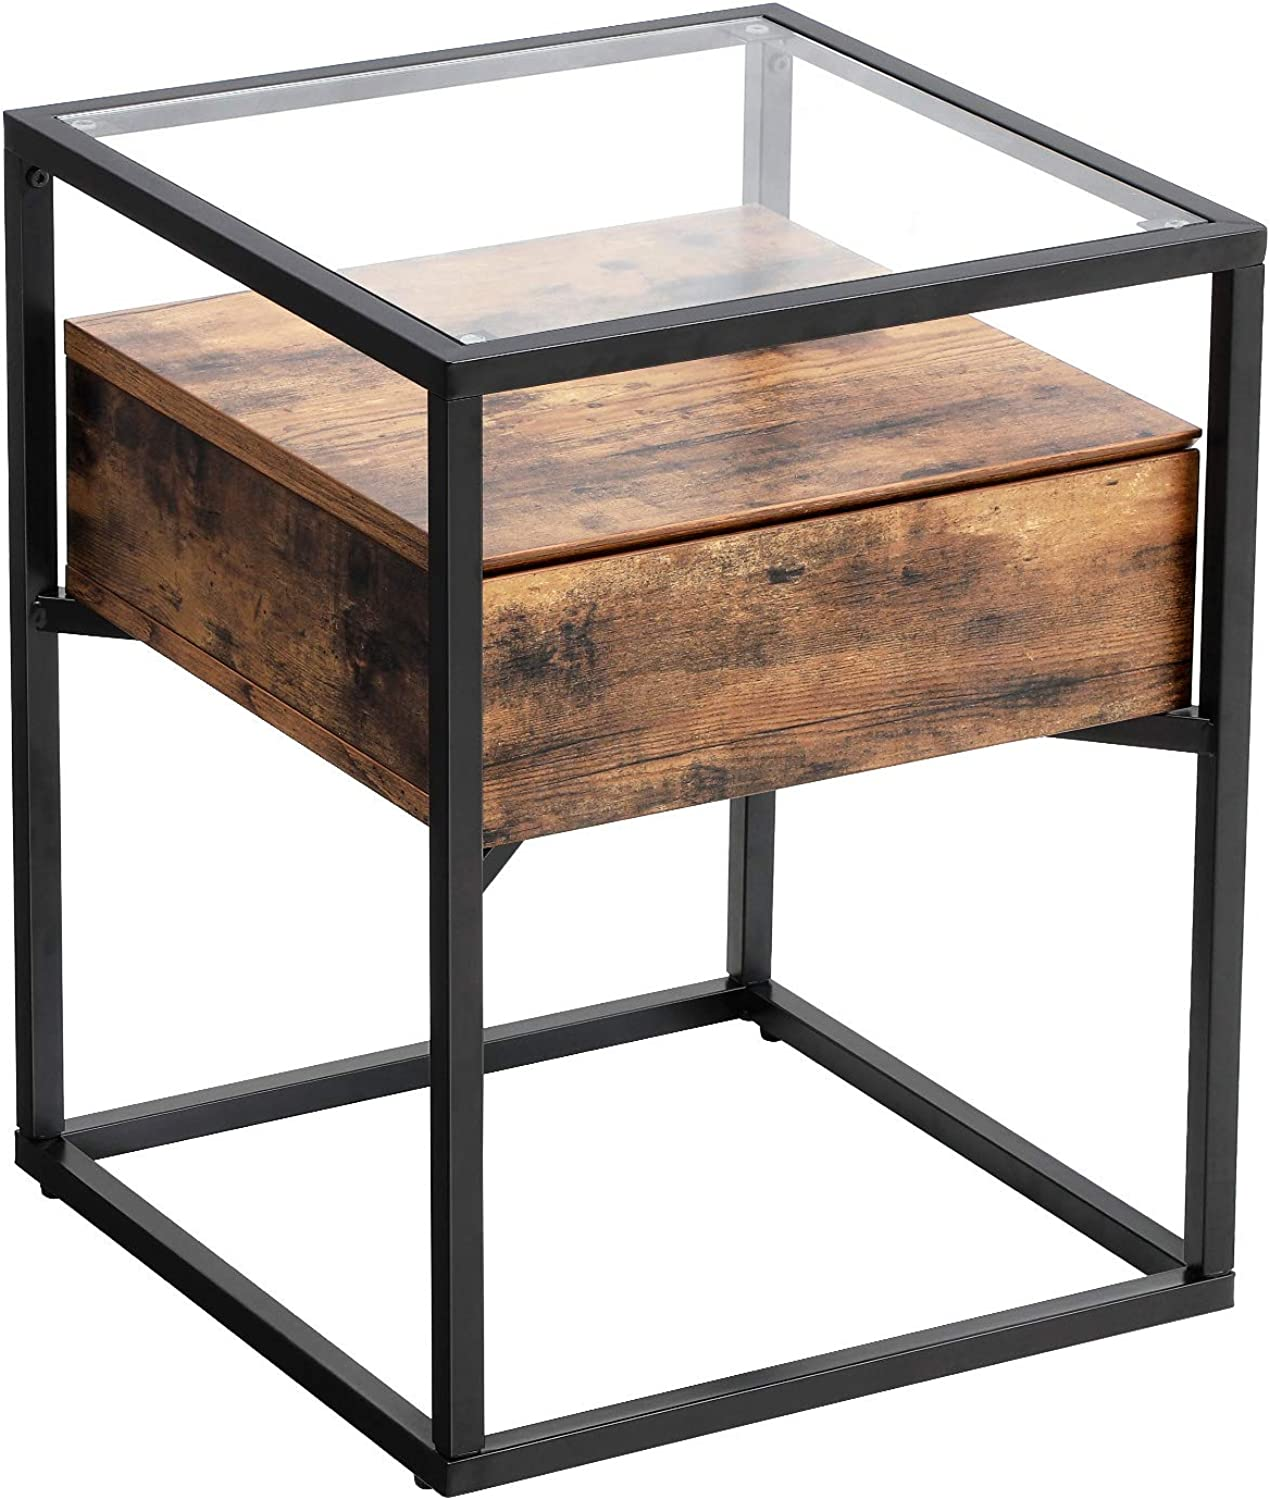 VASAGLE Industrial Side, Tempered Glass End Table with Drawer and Rustic Shelf, Decoration in Living Room Lounge Foyer, Stable Iron Frame ULET04BX